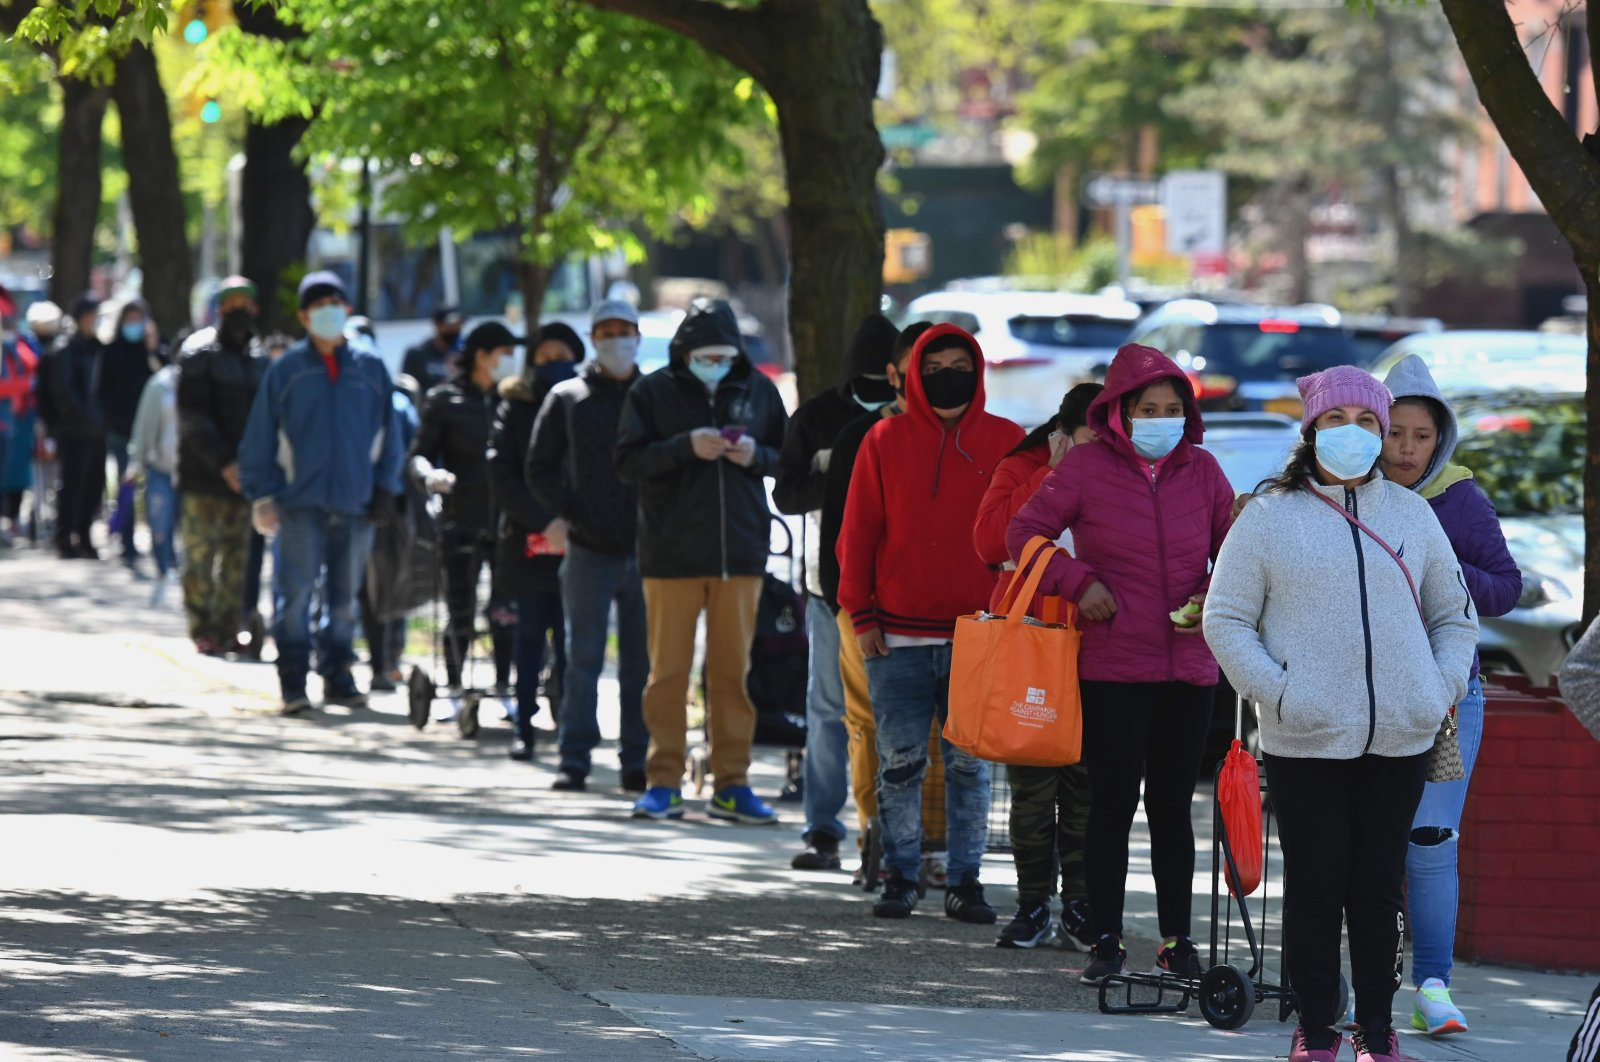 People wait in line as members of the U.S. Army National Guard hand out food and other essentials for people in need at a food pantry in the Brooklyn borough of New York City, New York, U.S., May 13, 2020. (AFP Photo)